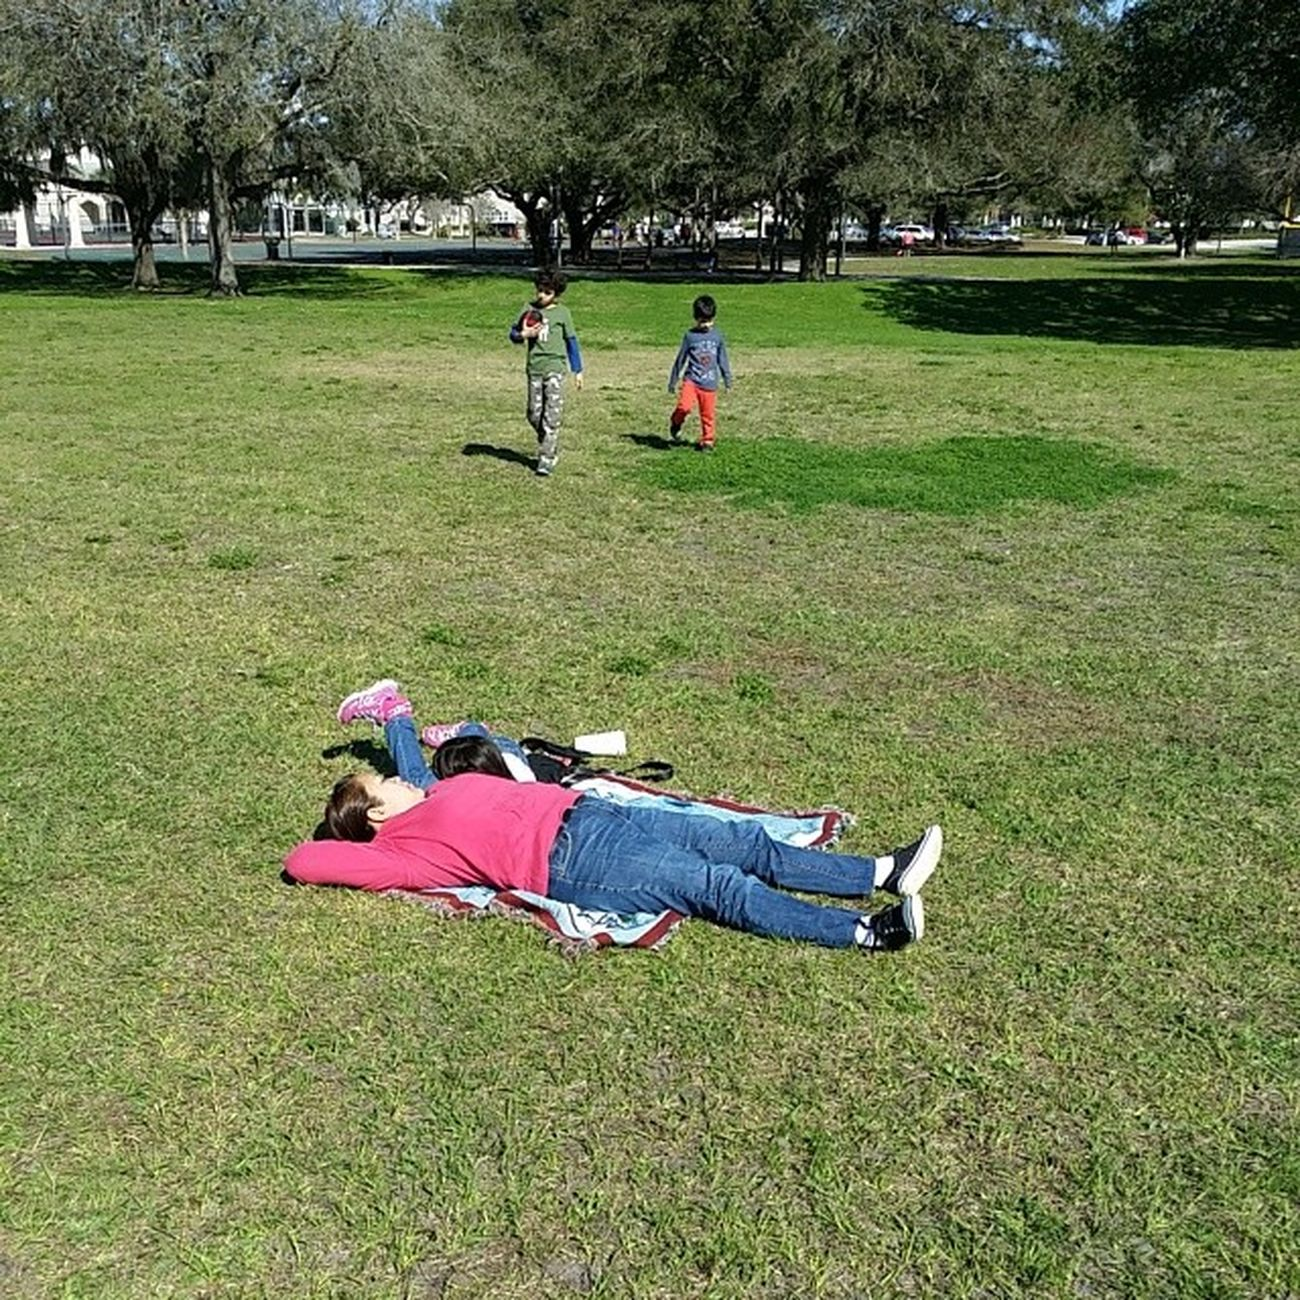 Beautiful day in the park and the ladies think they're at the beach.